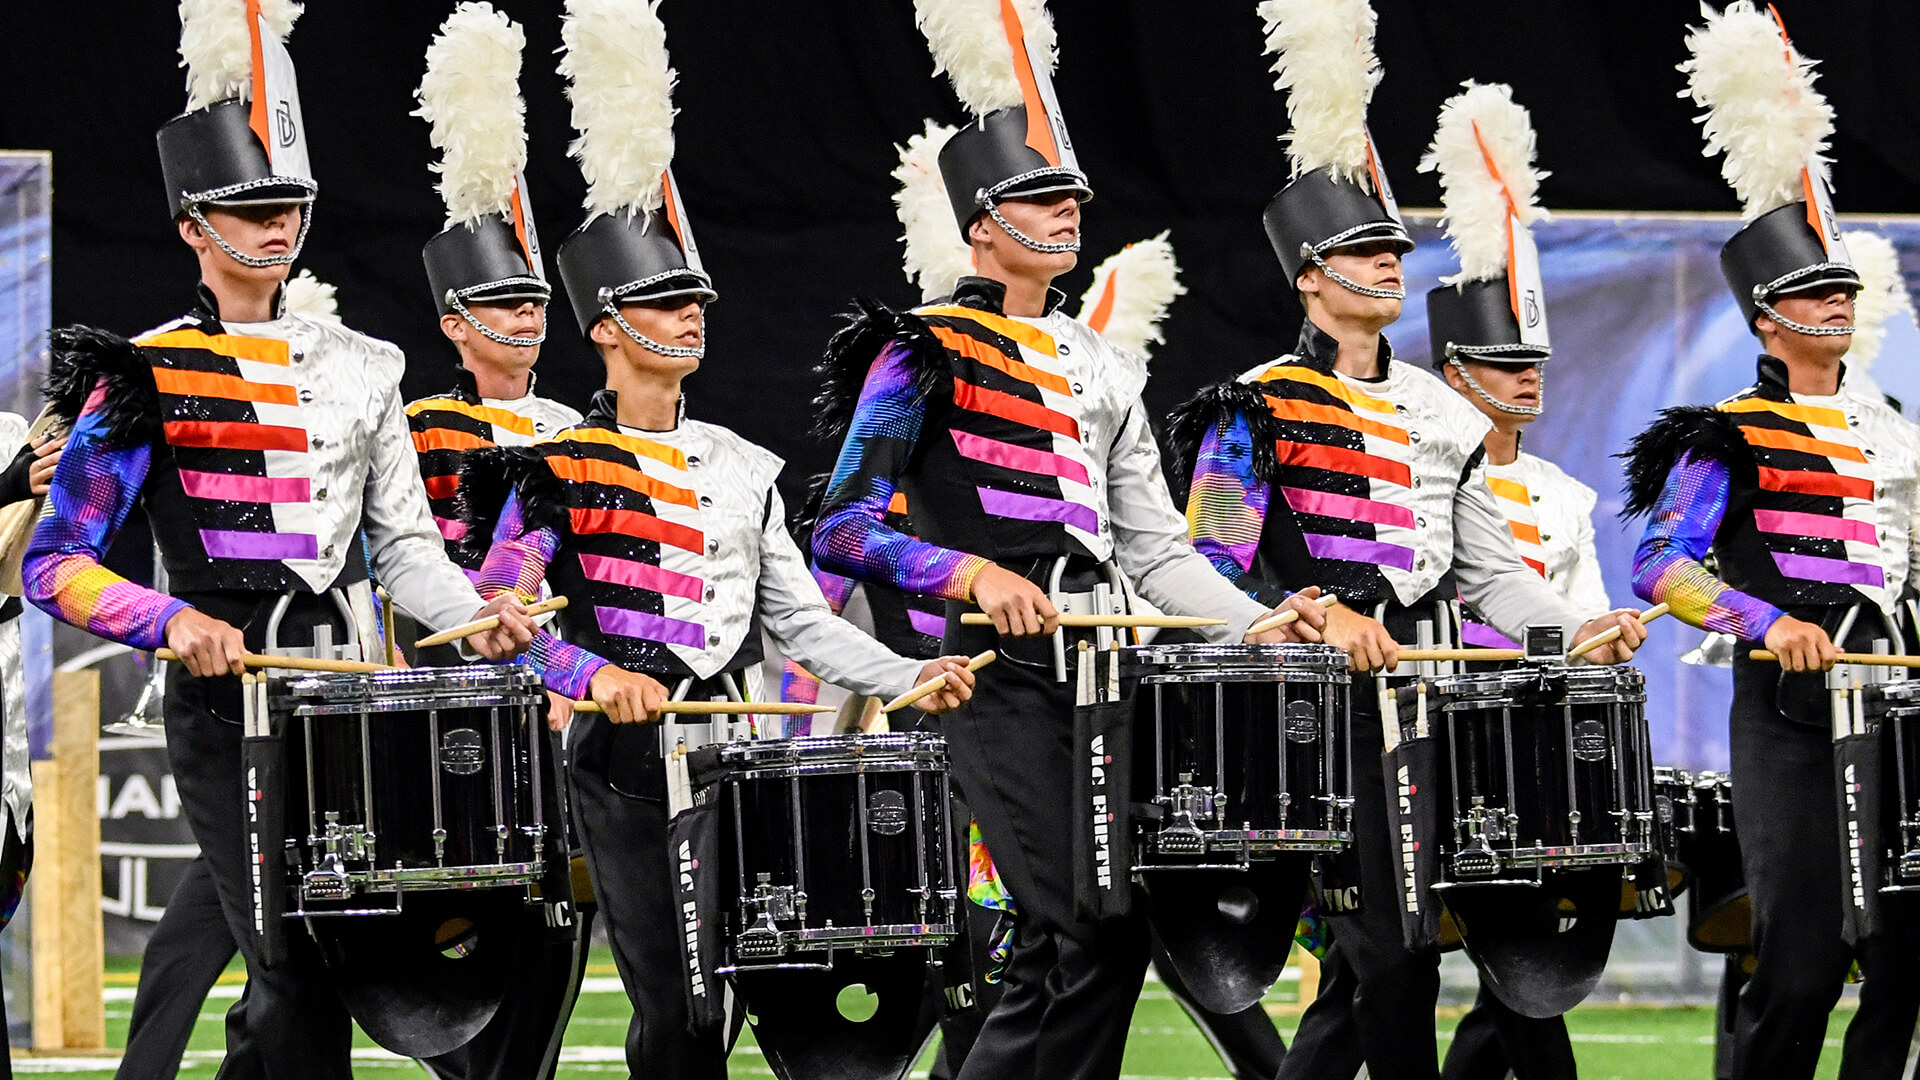 Jubal wins 2018 Drum Corps Europe title